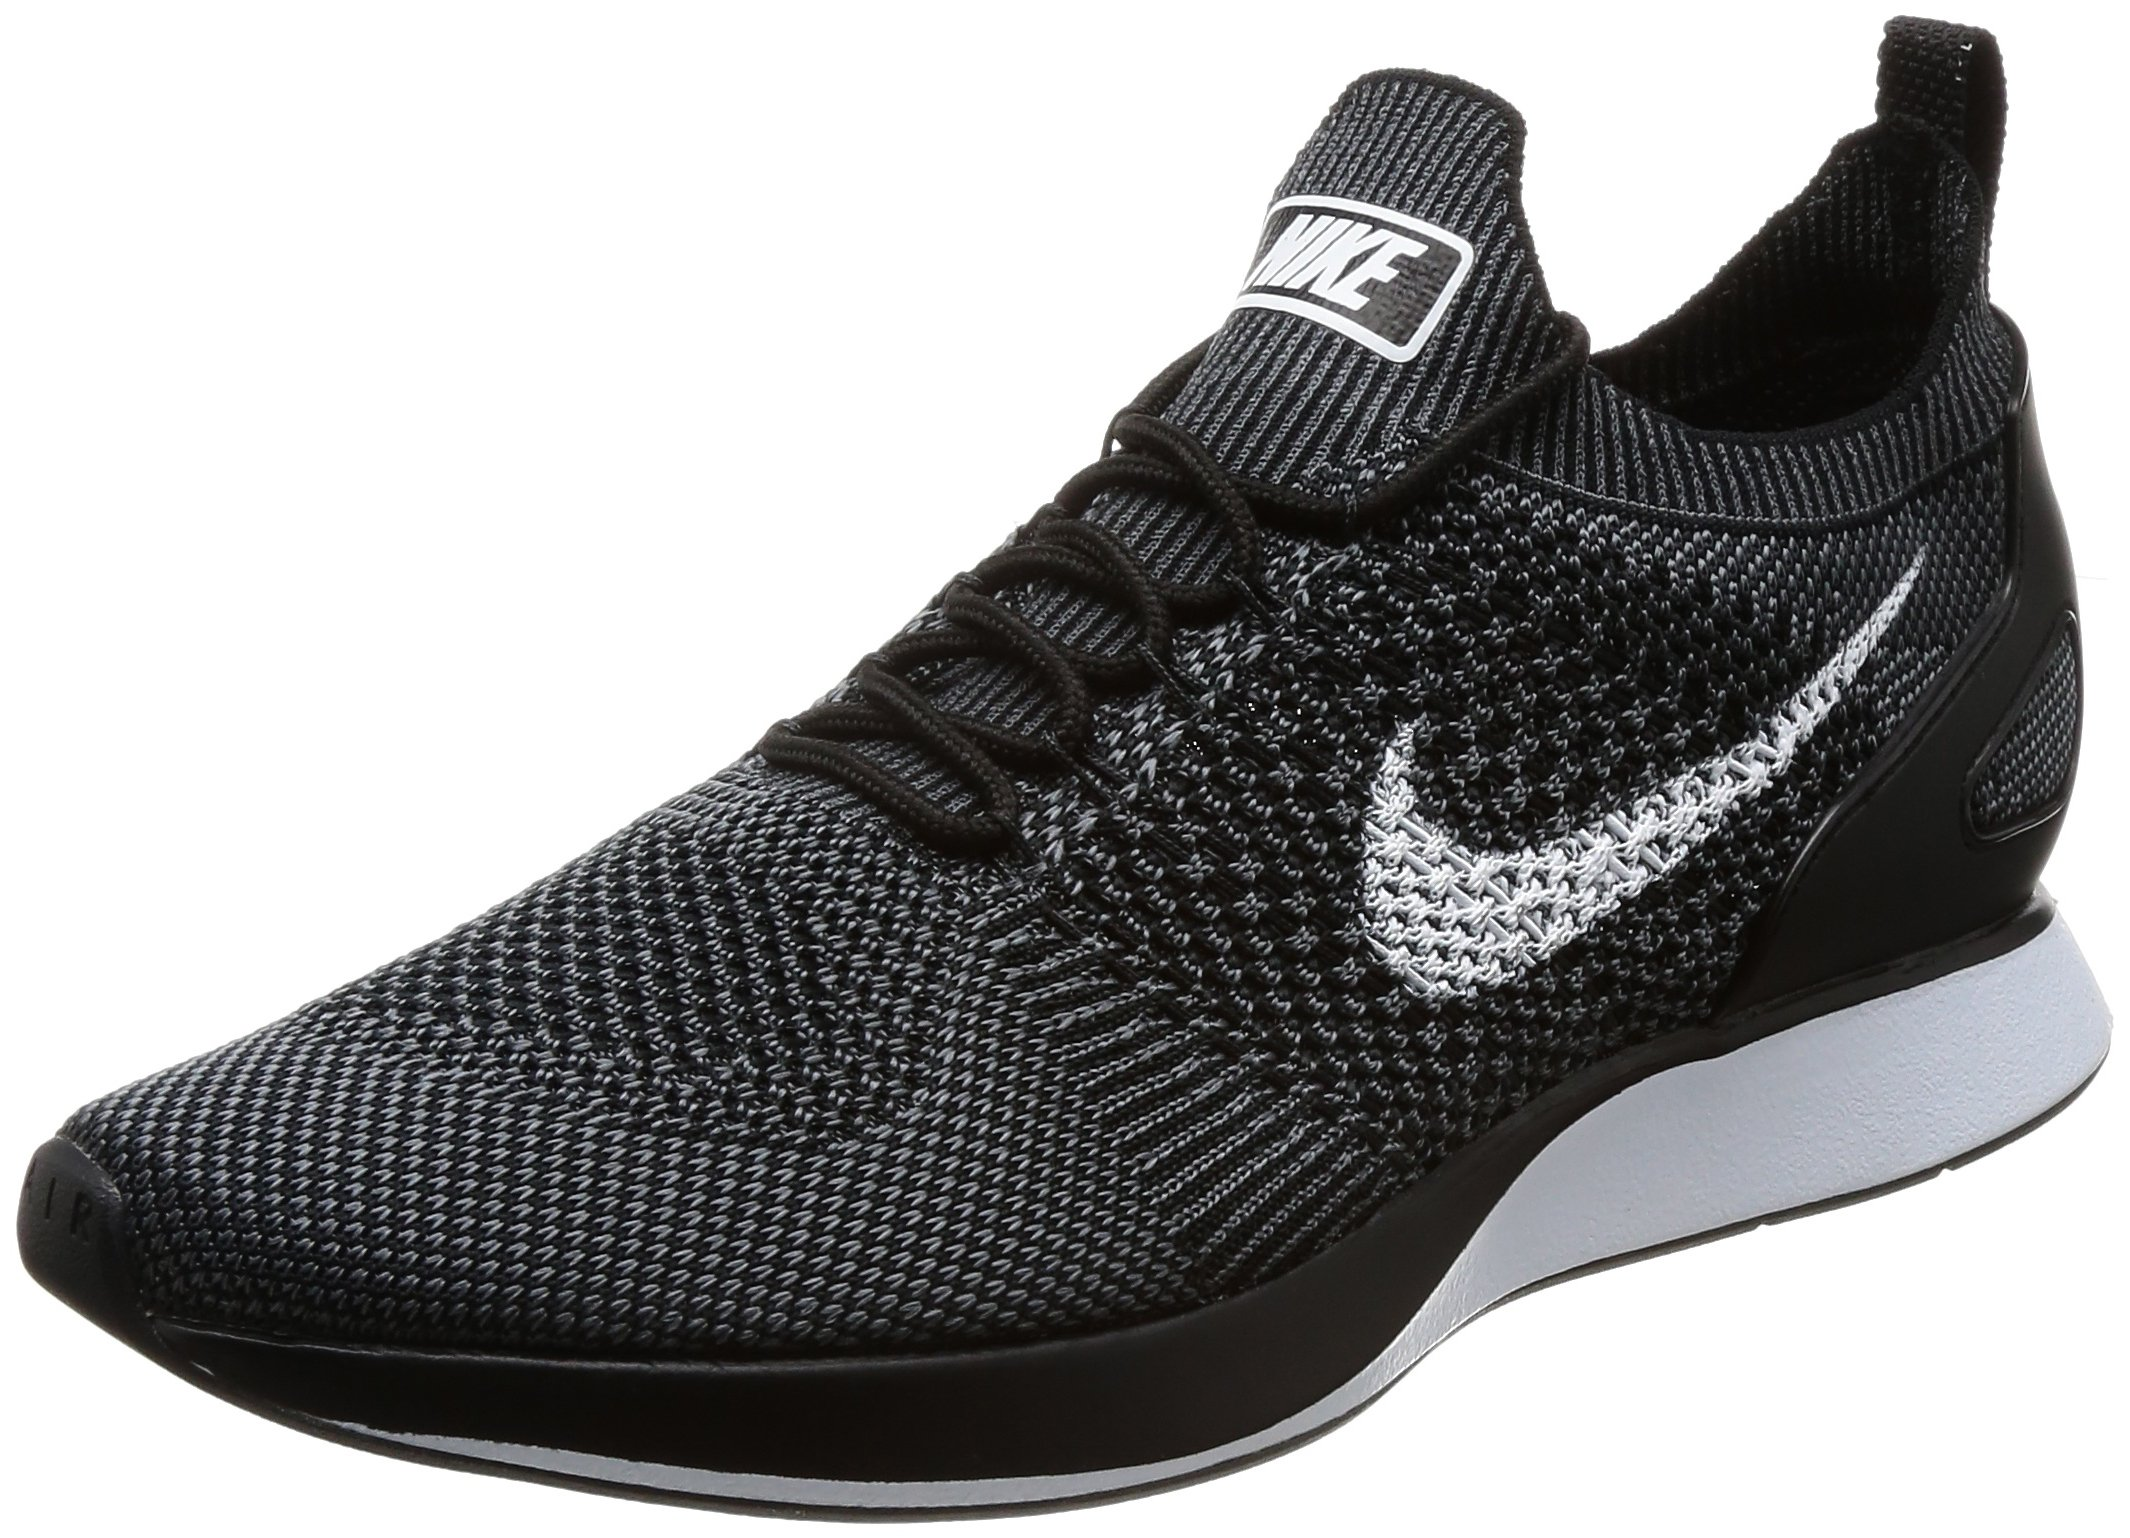 0be2bc1d41f95 Galleon - Nike Zoom Mariah Flyknit Racer Mens Running Trainers 918264 Sneakers  Shoes (UK 8.5 US 9.5 EU 43